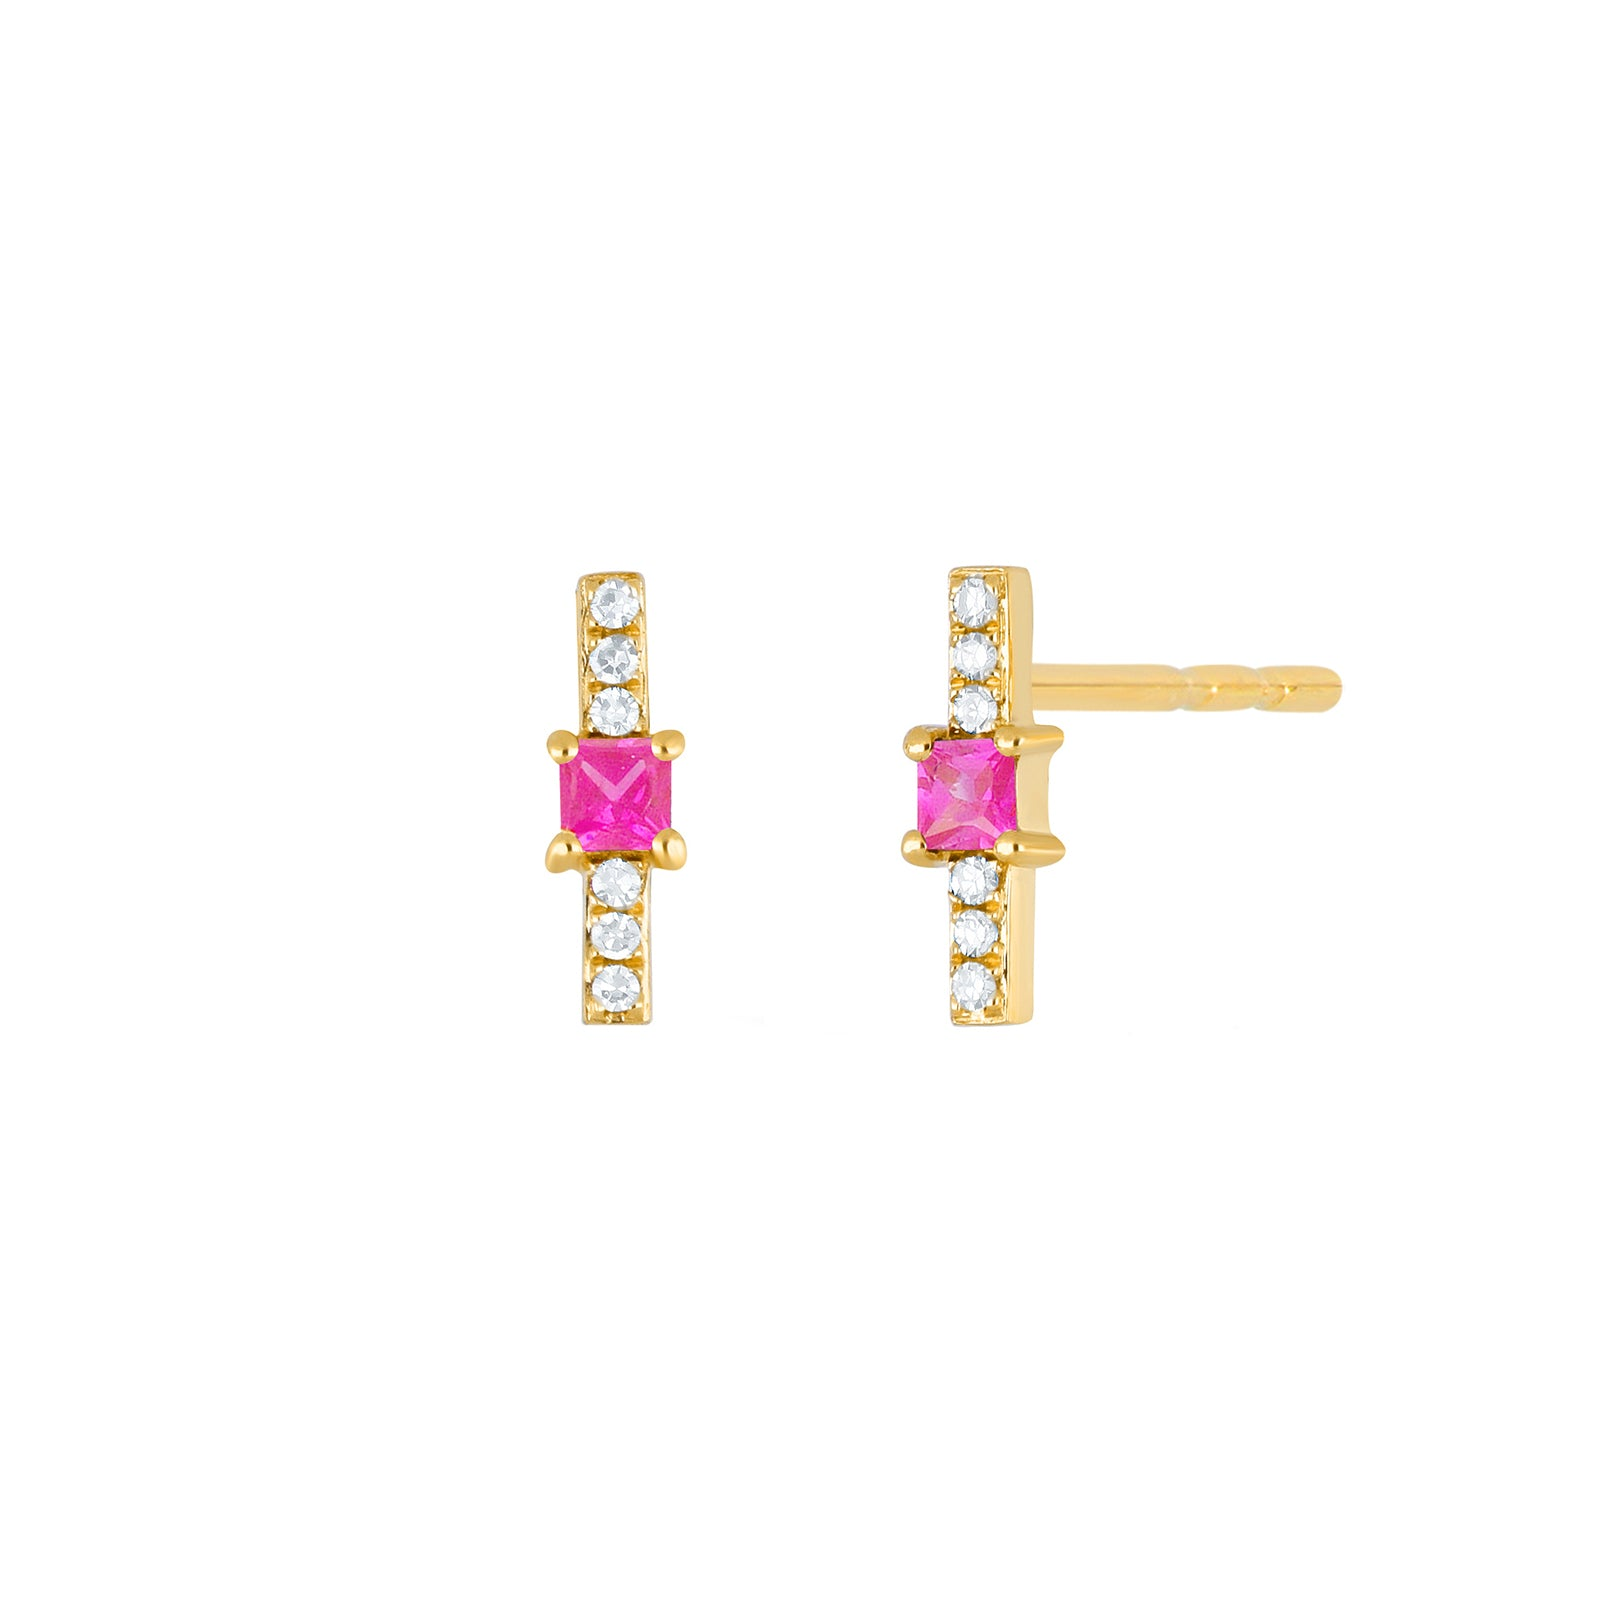 EF Collection Pink Sapphire & Diamond Princess Bar Studs - Yellow Gold - Earrings - Broken English Jewelry